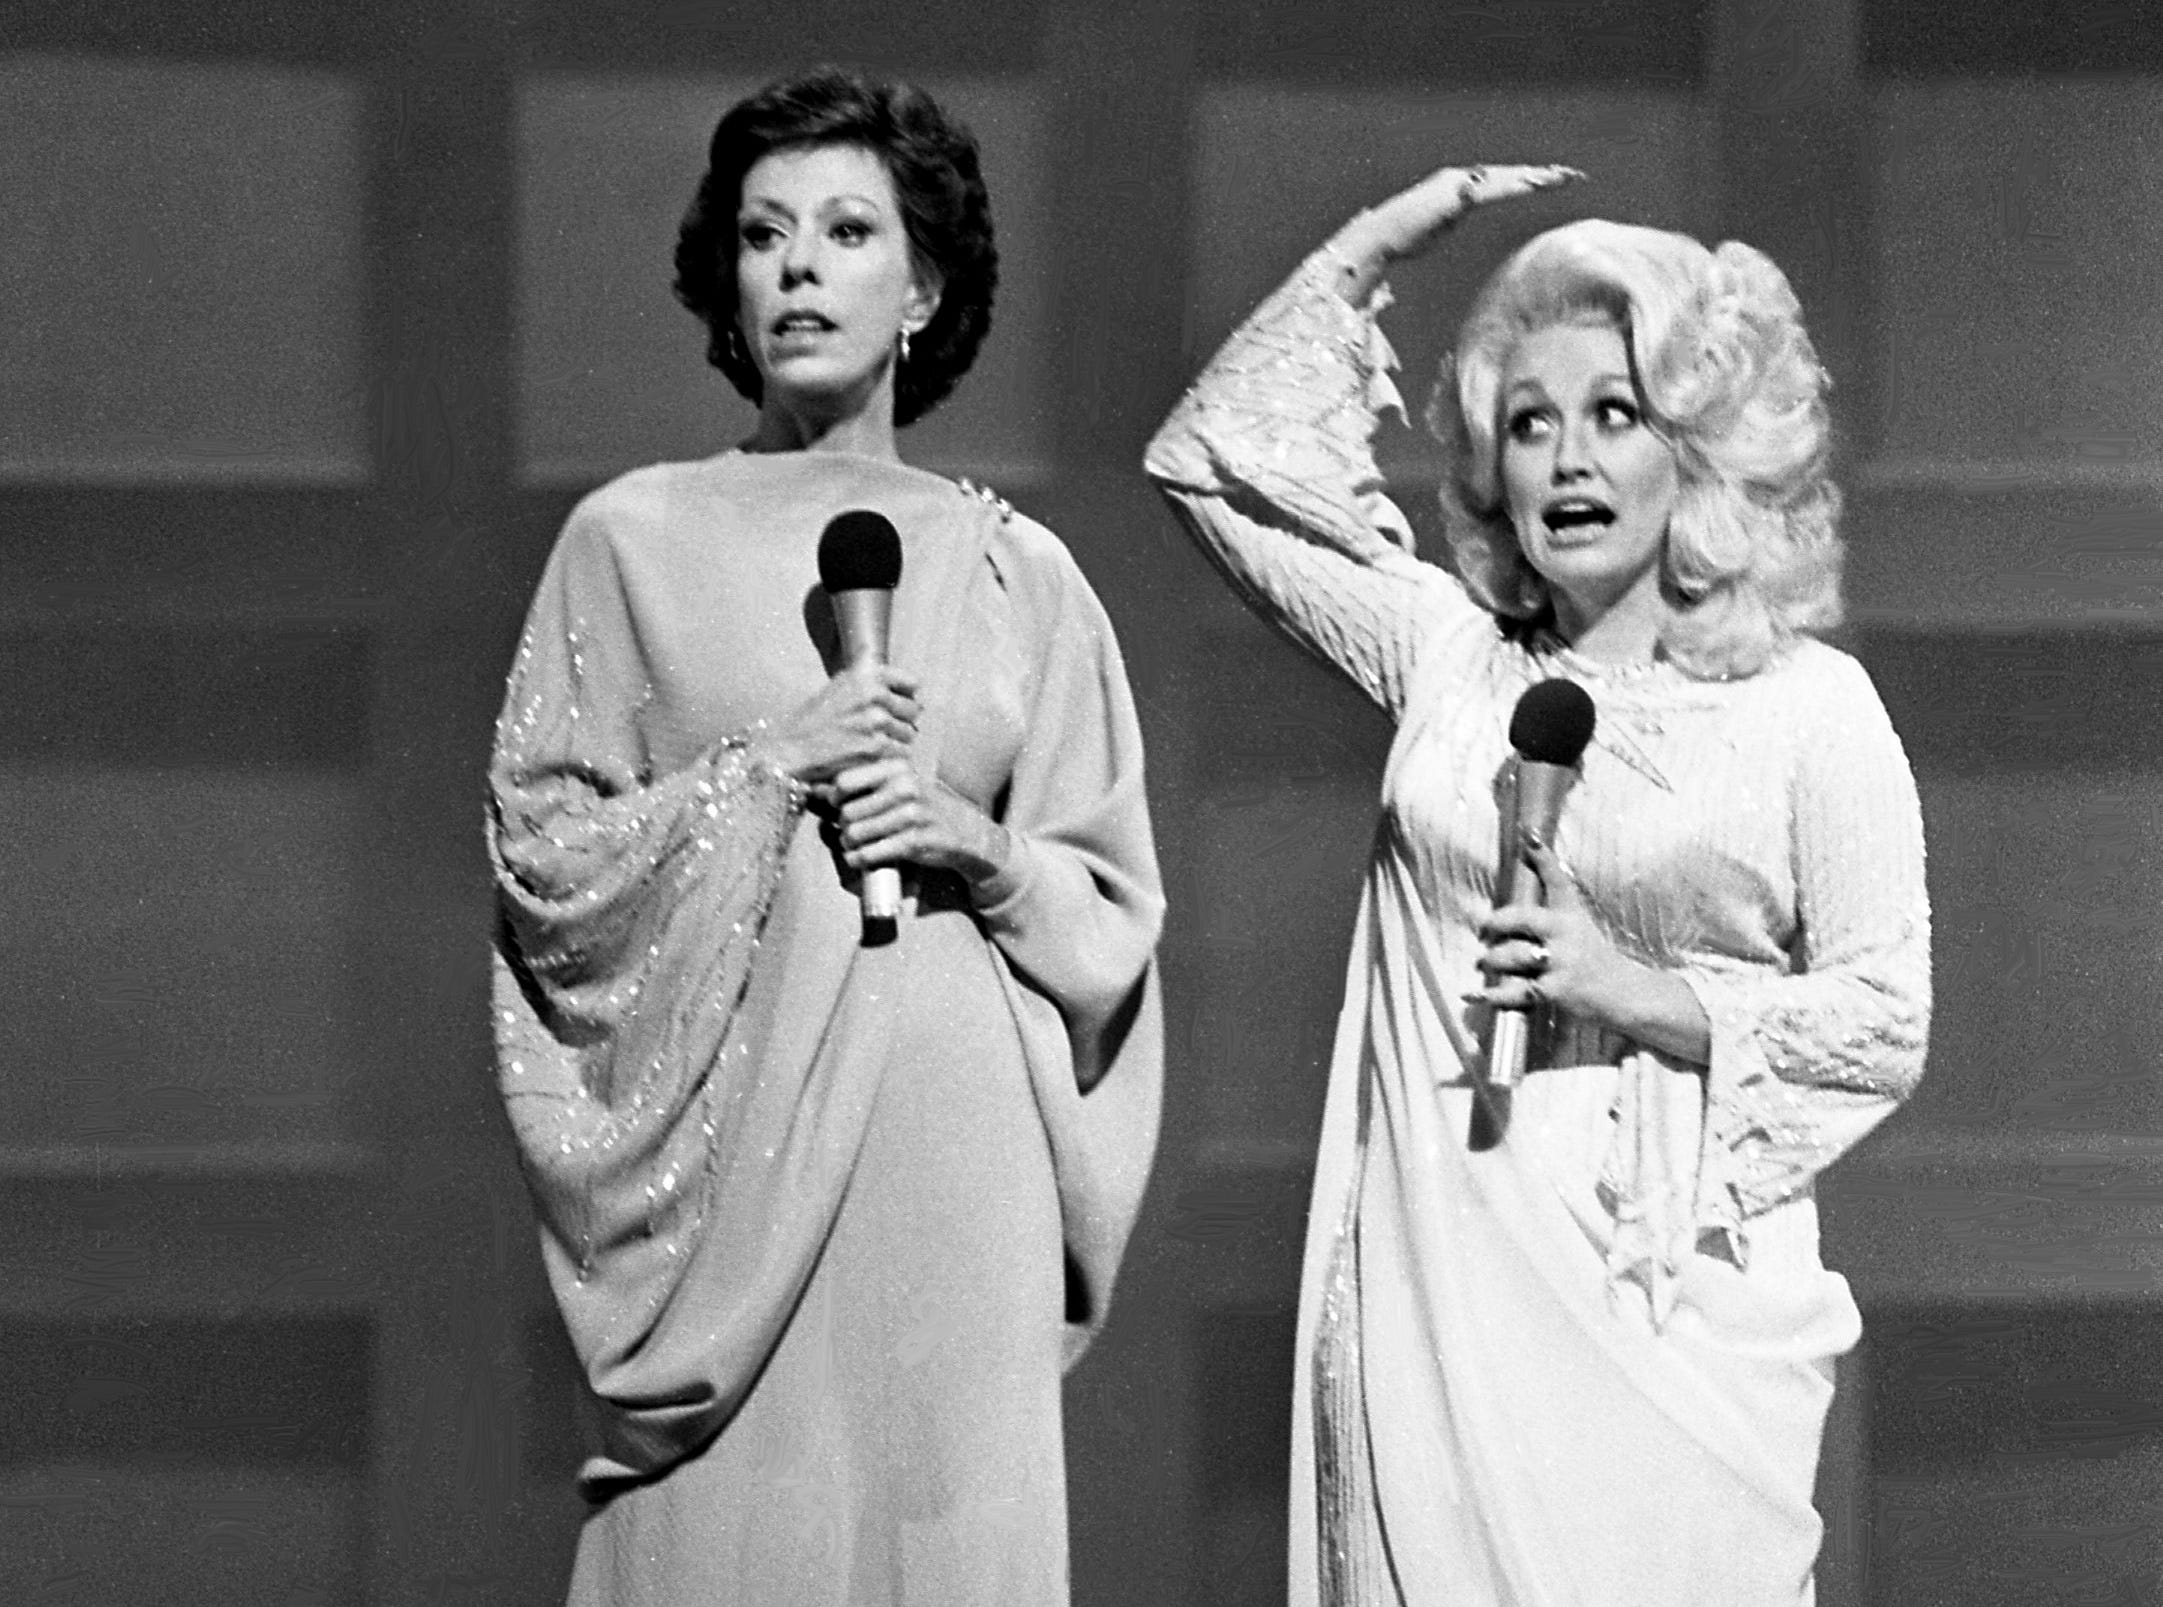 """Carol Burnett and Dolly Parton perform the """"Pedestal Song"""" skit during the taping of the """"Dolly and Carol in Nashville"""" television special before a packed audience at the Grand Ole Opry House Jan. 10, 1979."""